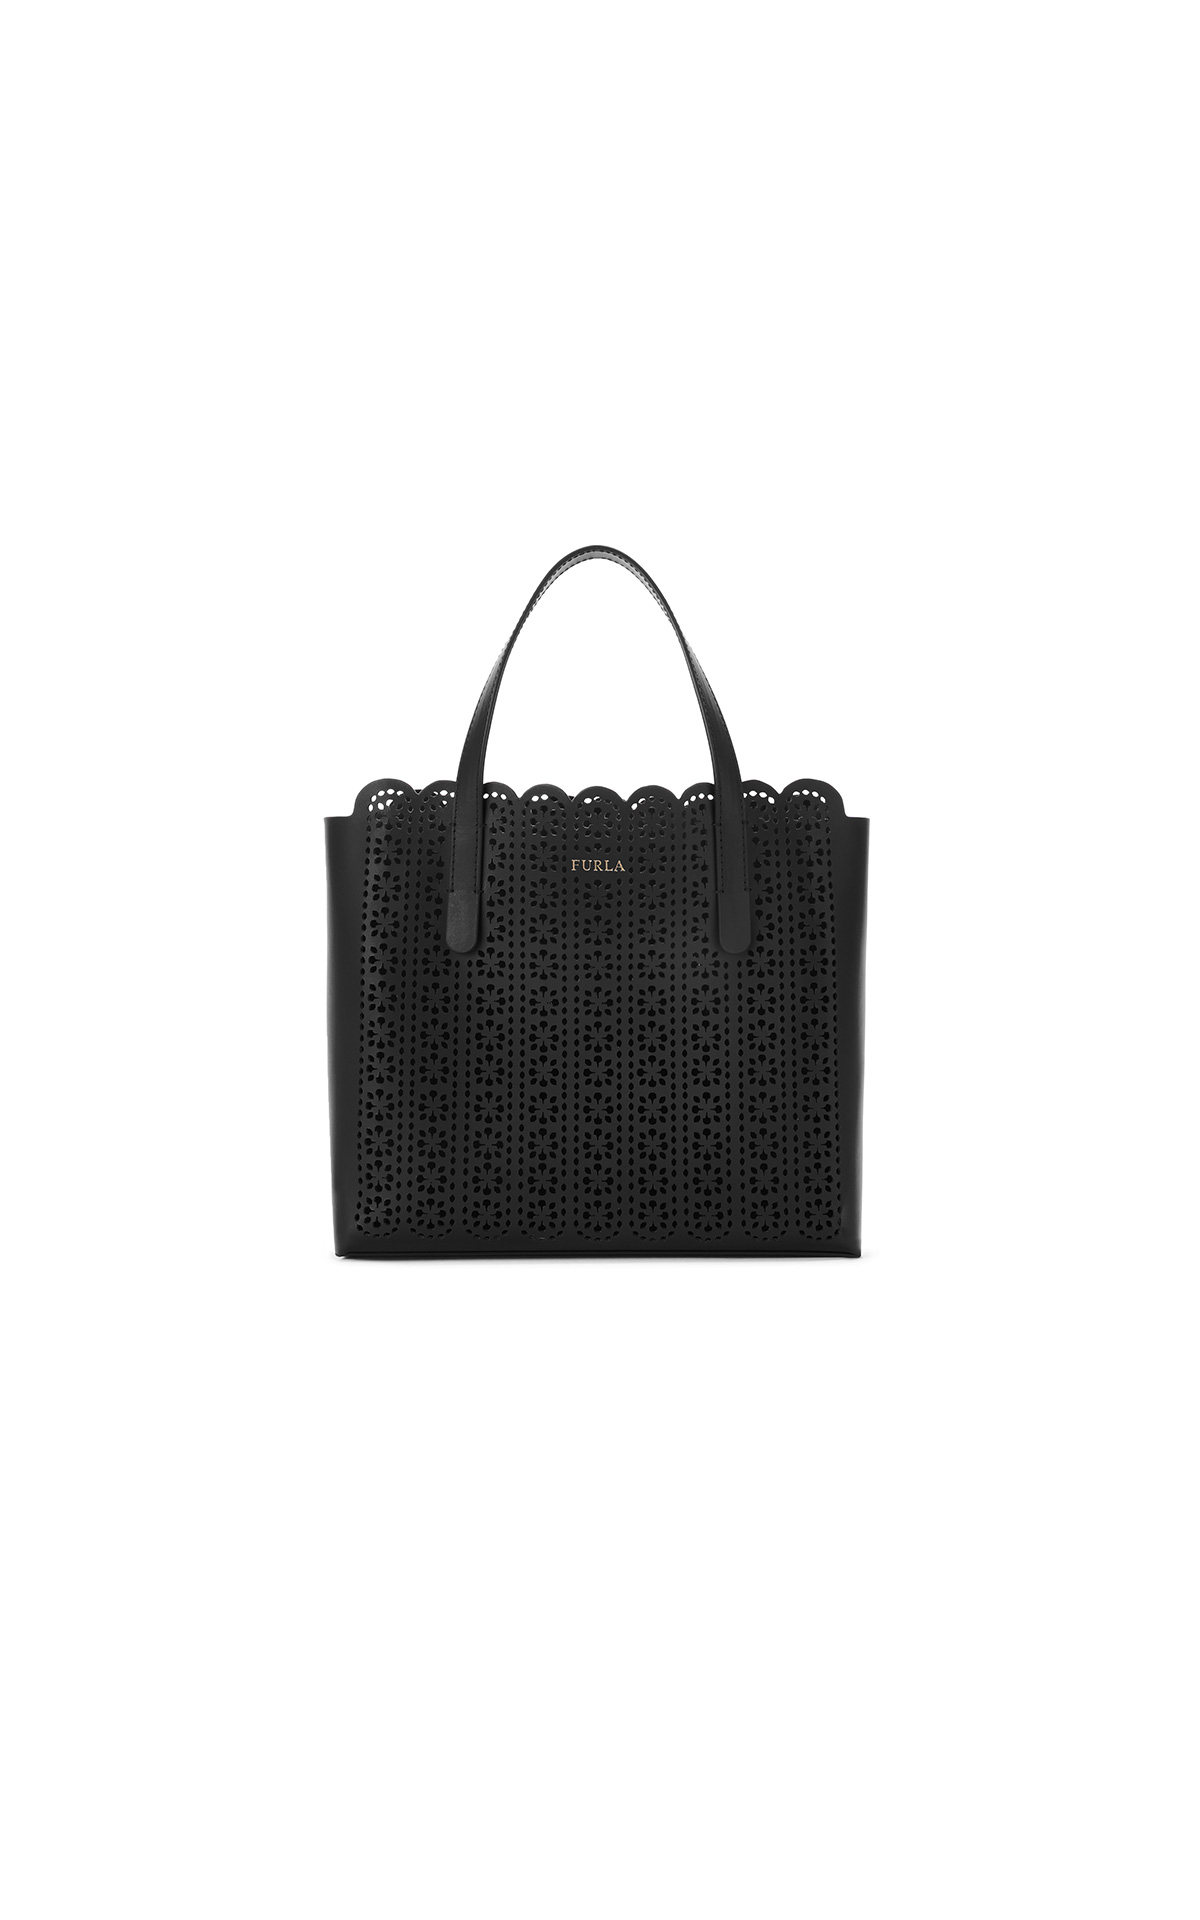 Furla Sally S Tote in black at The Bicester Village Shopping Collection